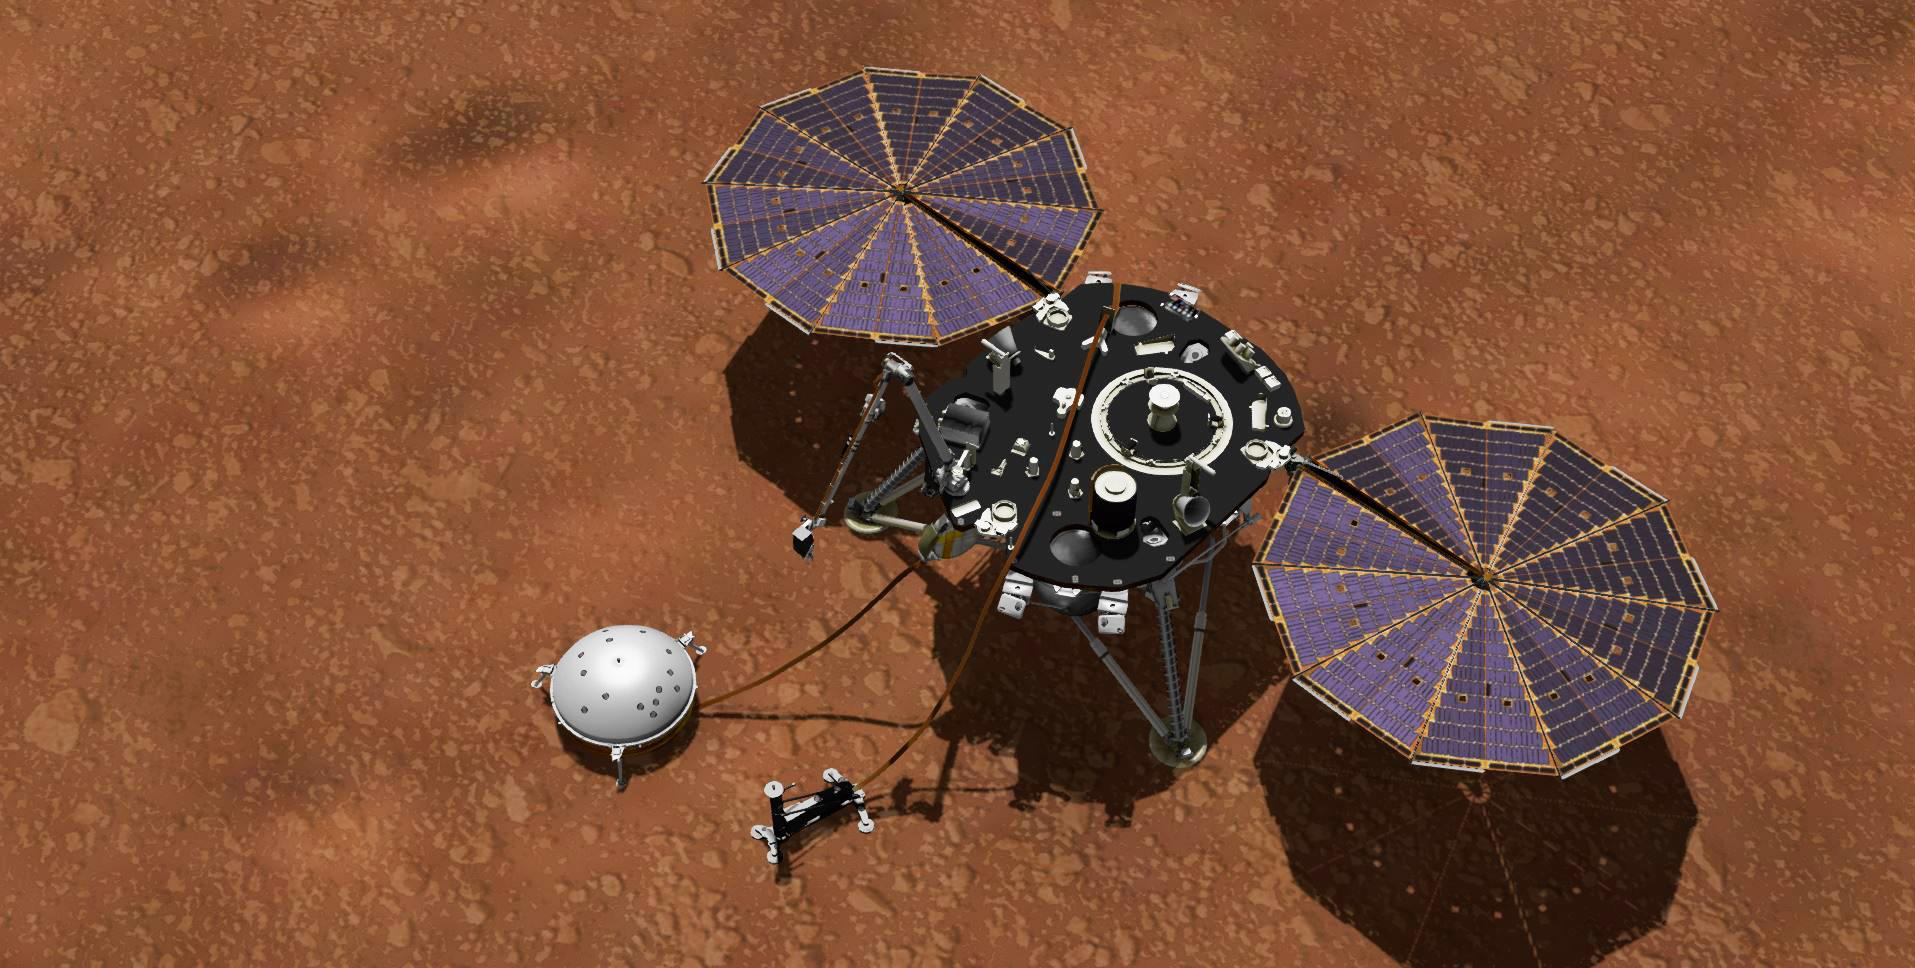 This artists concept shows NASAs InSight lander with its instruments deployed on the Martian surface. Several of the sensors used for studying Martian weather are visible on its deck.